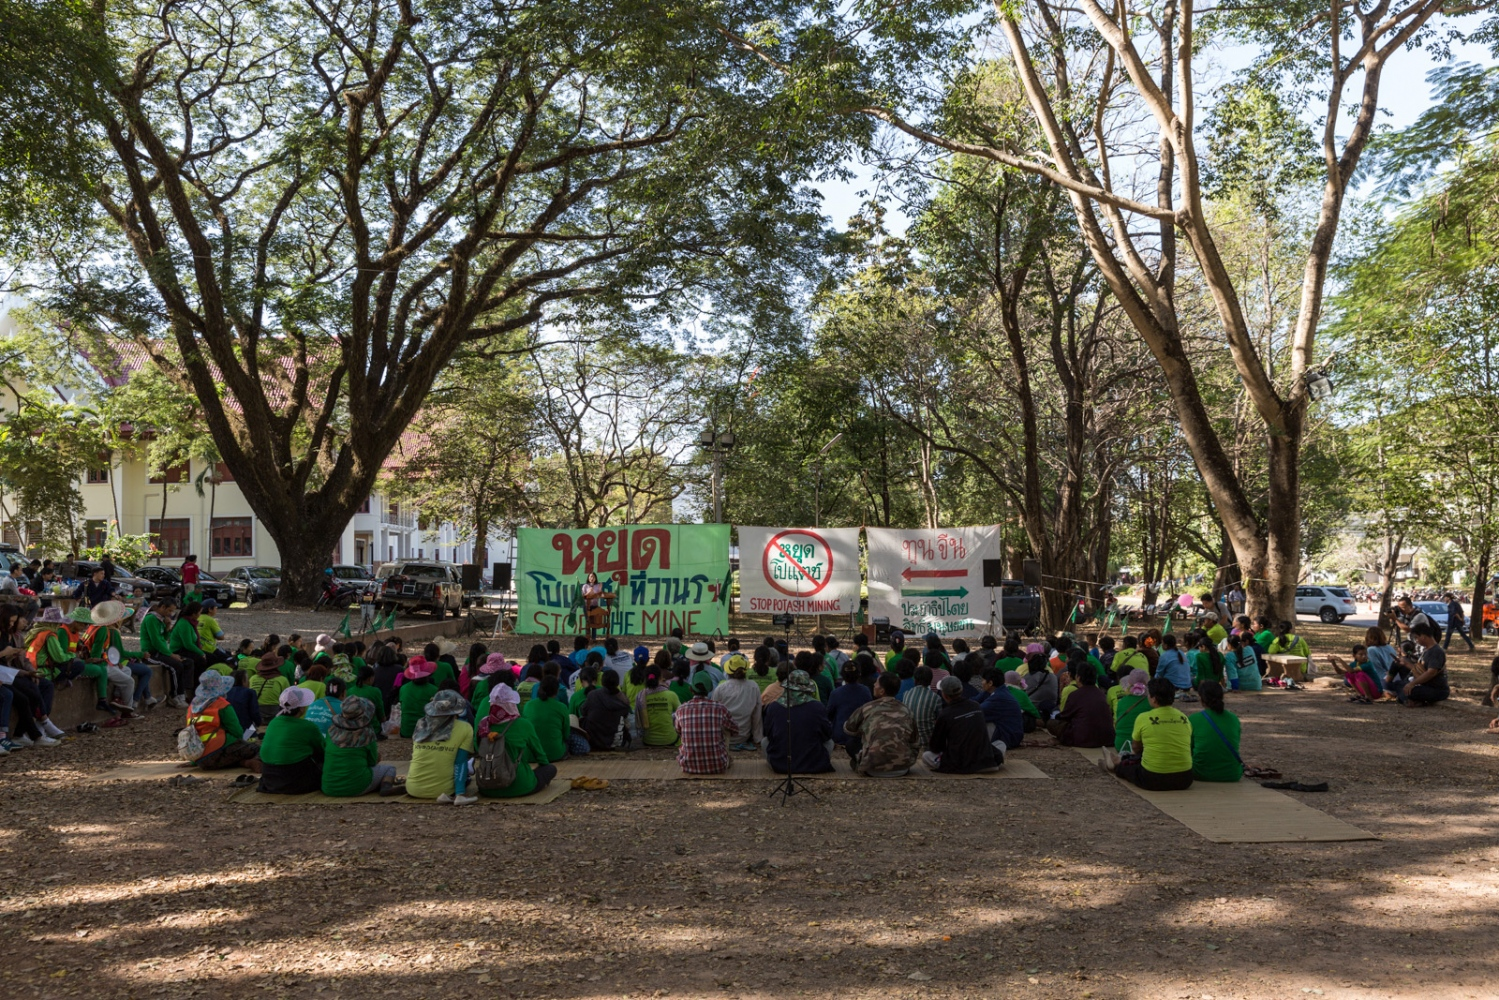 At their final destination of Sakhon Nakhon University over 200 anti-potash mining protesters sit and listen to visiting speakers from academia and anti-mining groups whilst closely watched by the authorities.